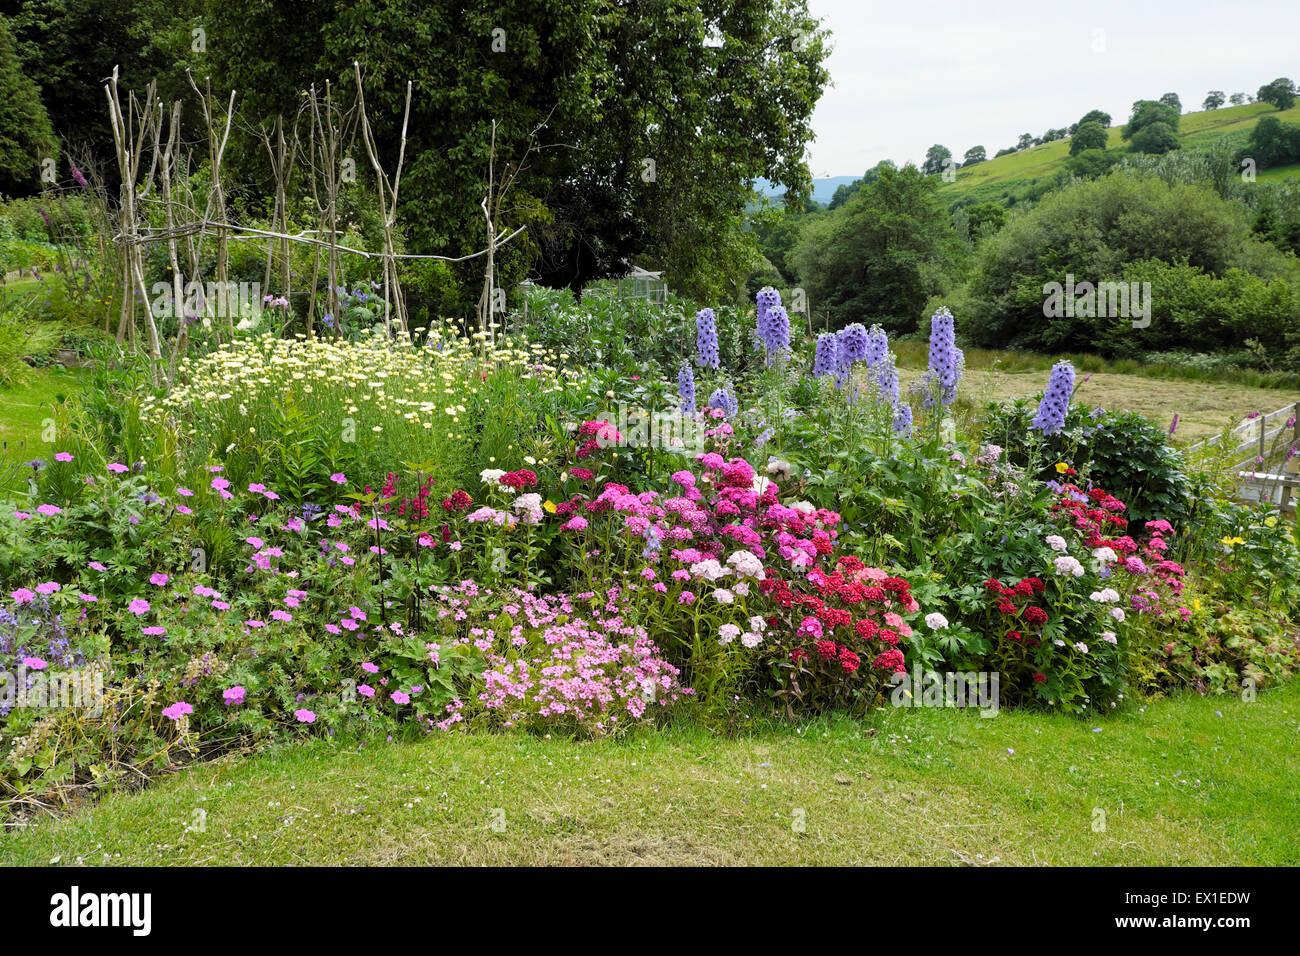 View of a colourful organic rural herbaceous border country garden in bloom set in the countryside in West Wales - Stock Image